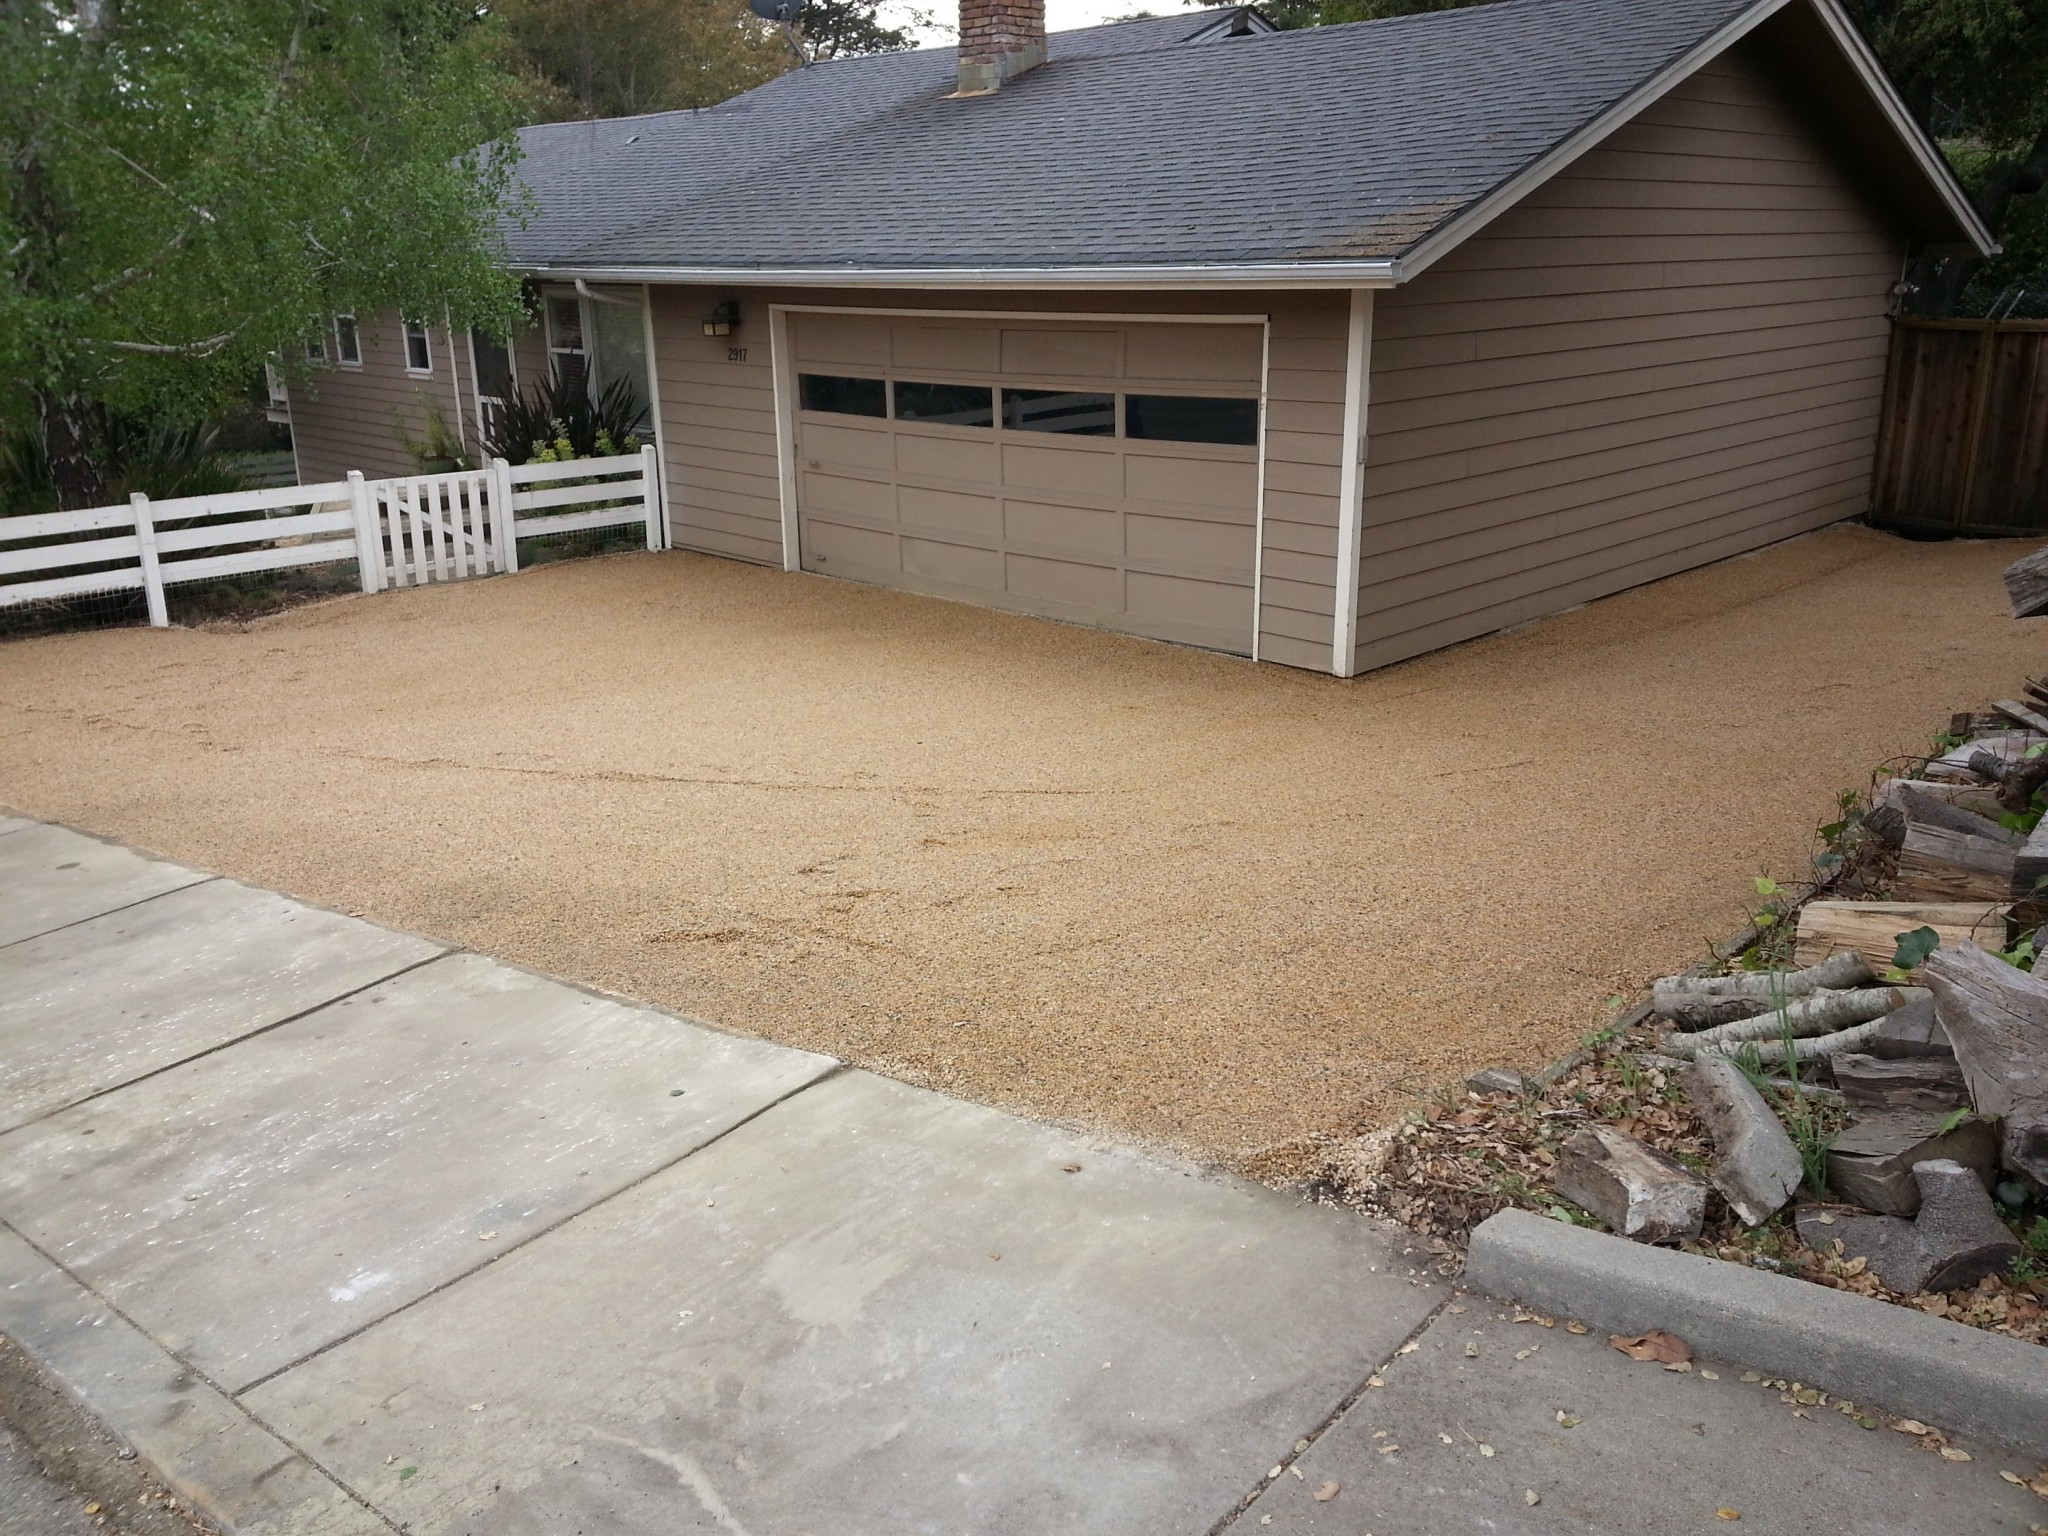 Gold gravel and a layer of base rock underneath allow rainwater to infiltrate